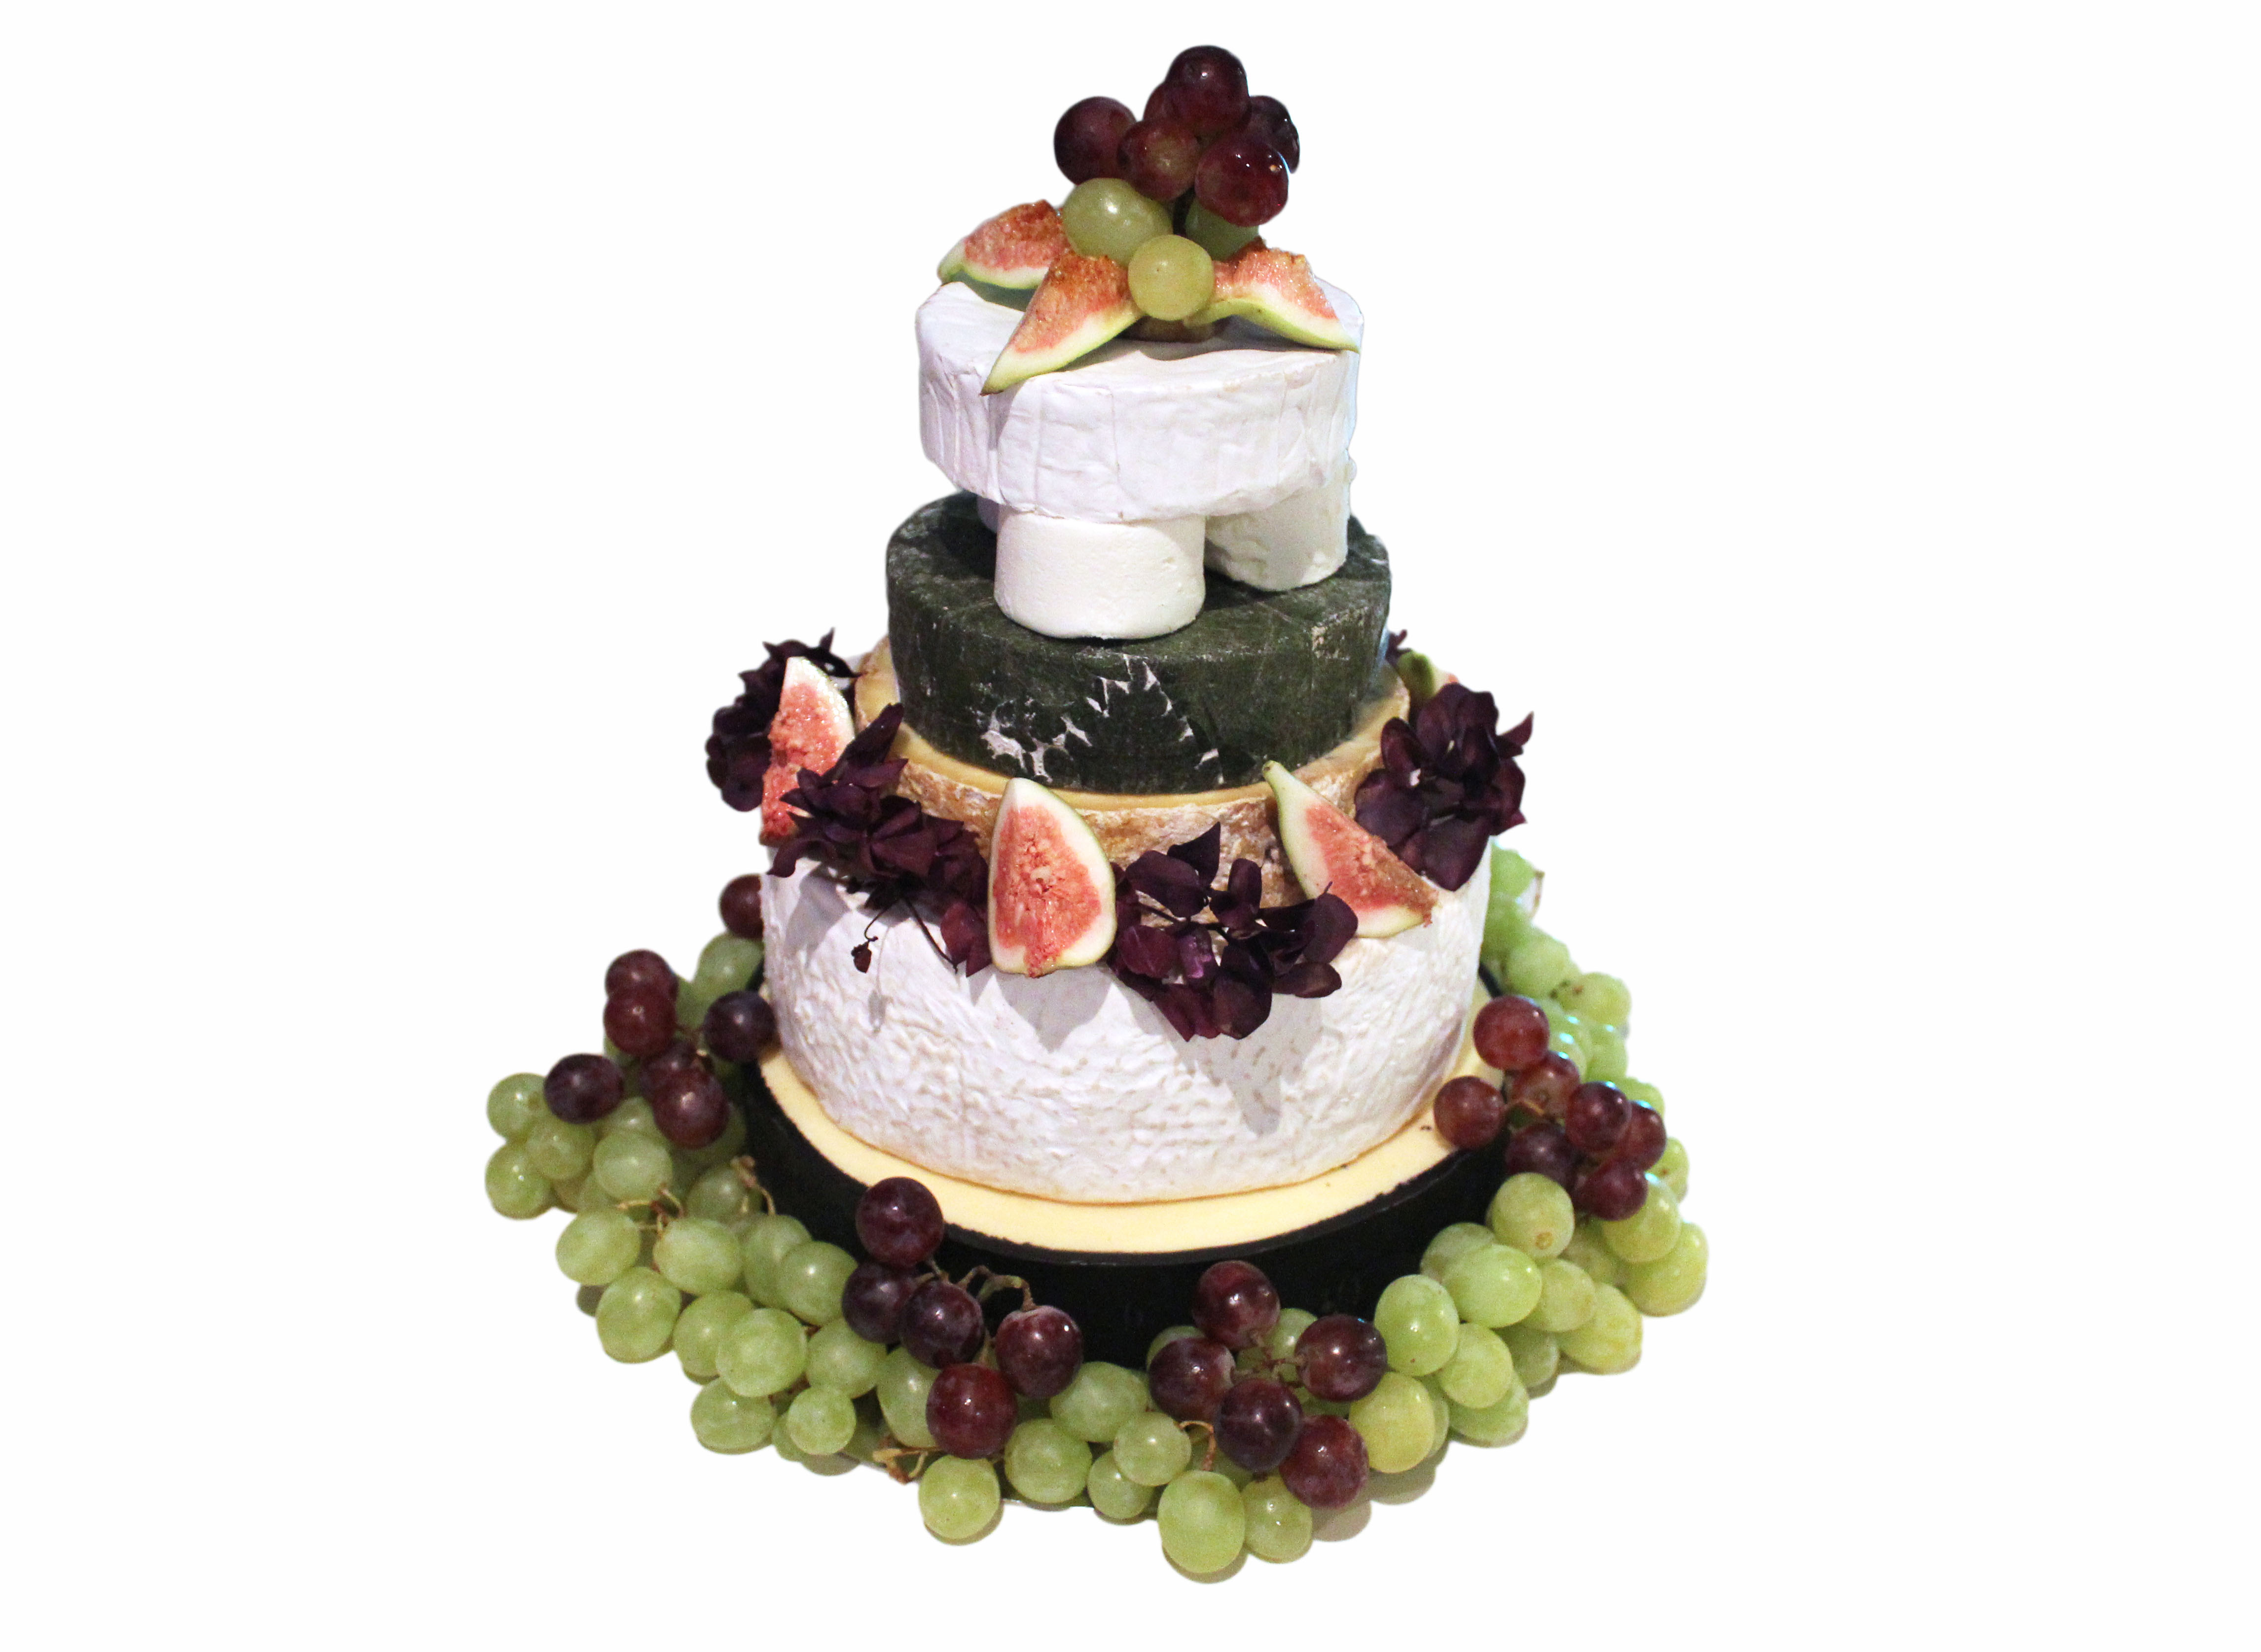 Otters Cheese Celebration Cake Example 12 | Otters Fine Foods